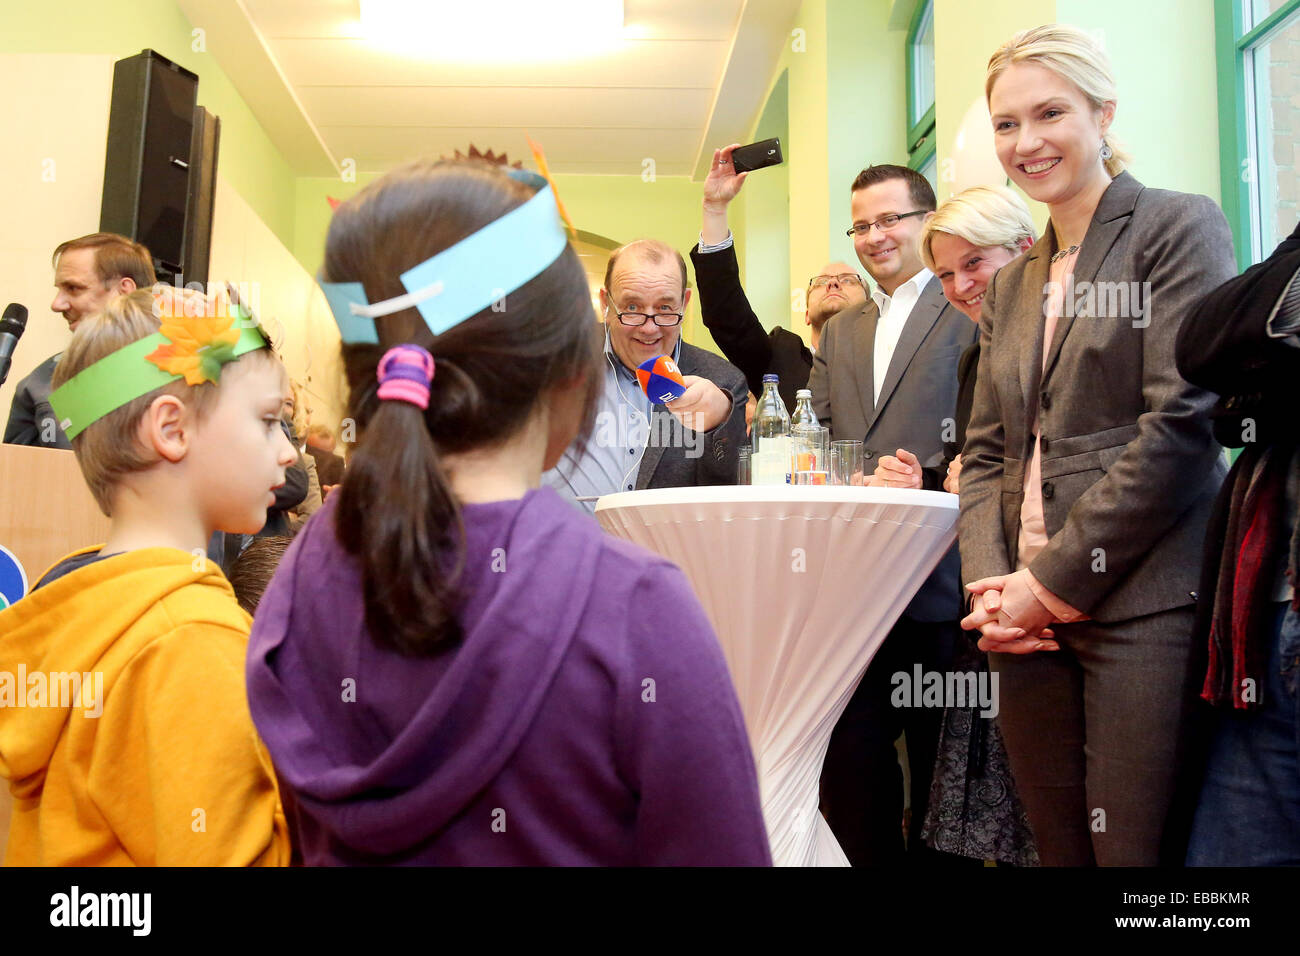 "German Family Minister Manuela Schwesig (R) takes part in the opening of the 24 hour daycare center ""nidulus duo"" Stock Photo"